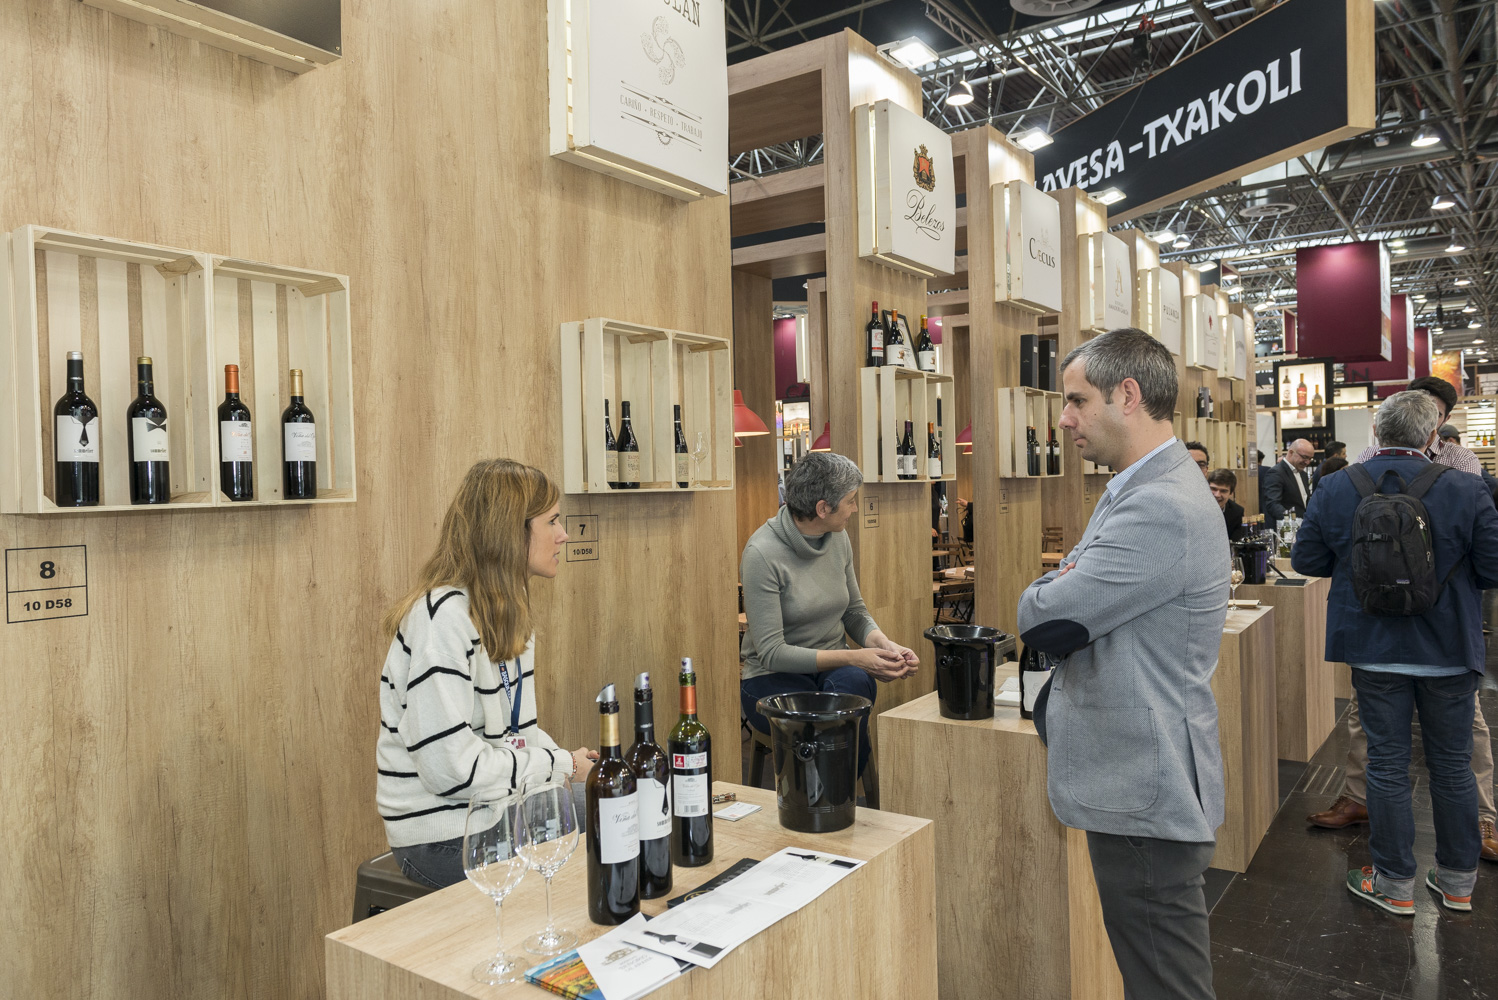 prowein_stand_euskadi_basque_country_04.jpg